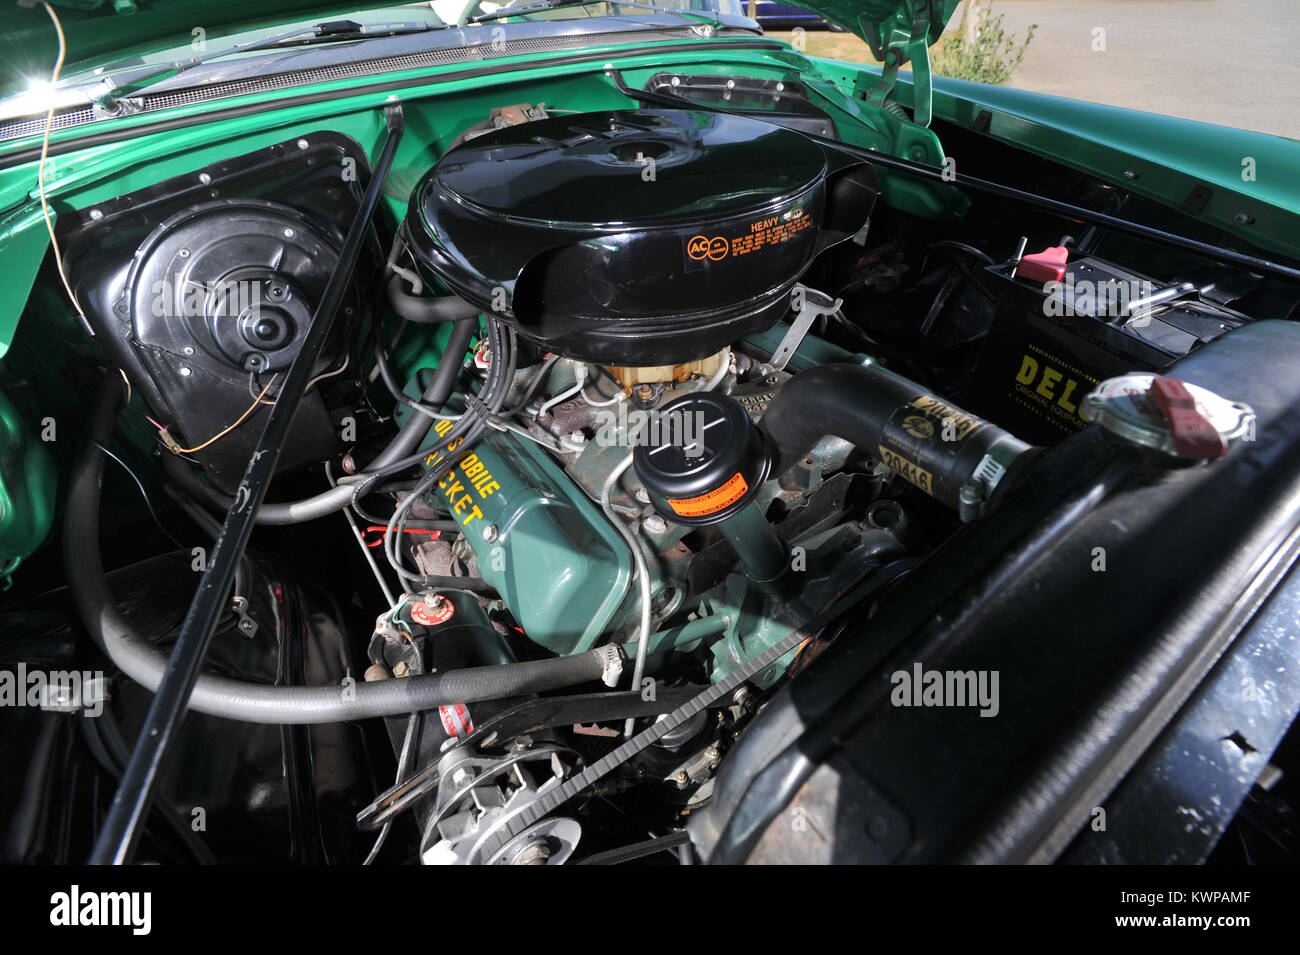 Rocket Engine Car Stock Photos Images Alamy 1992 Oldsmobile 88 Picture Of 1954 Convertible Classic American Image